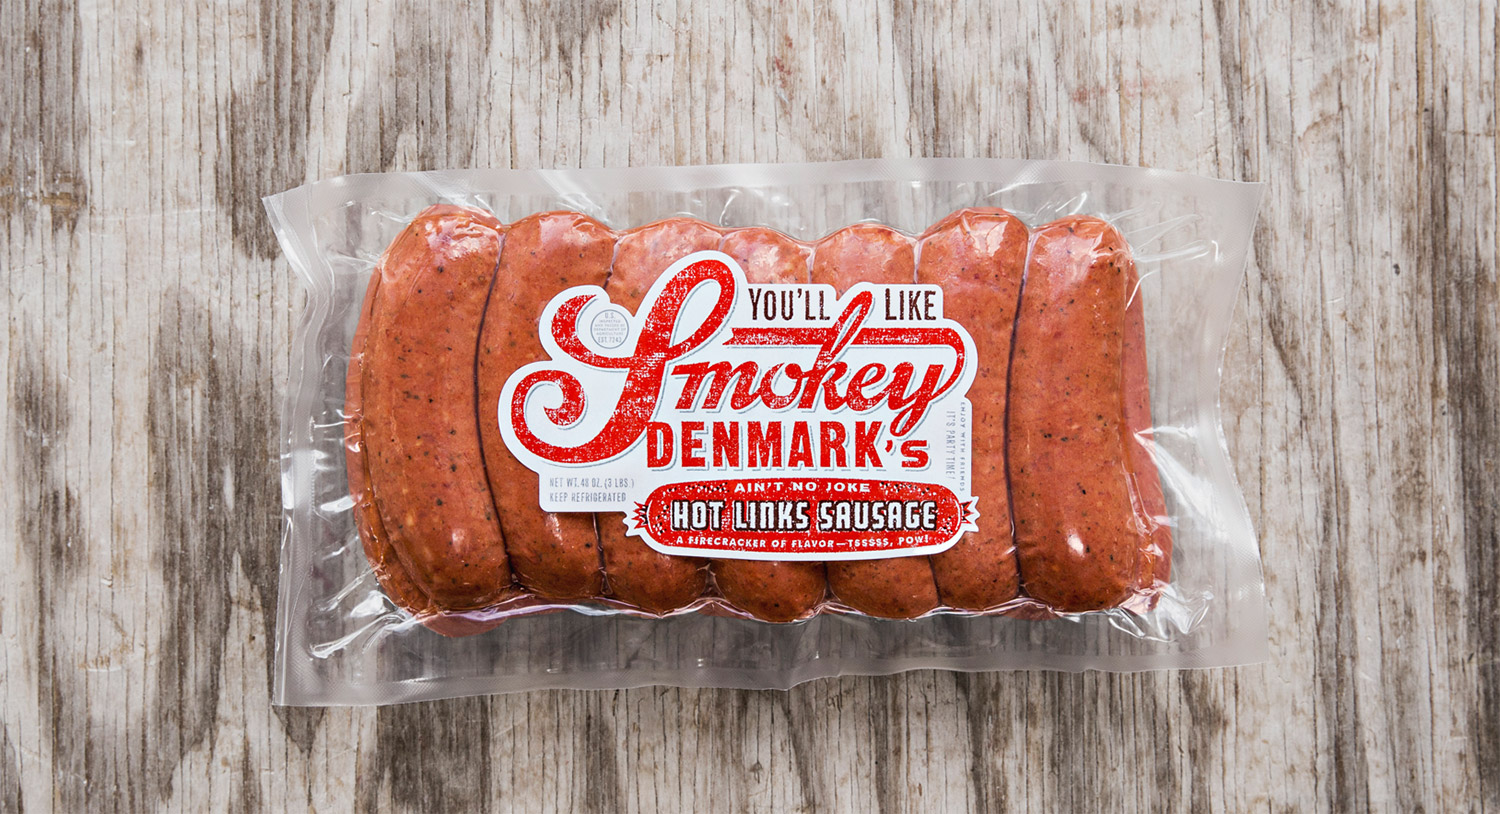 """Hot Links Sausage  They ain't no joke. A spicy firecracker of flavor. Nicknamed """"Smokey D's."""" Three pounder!"""